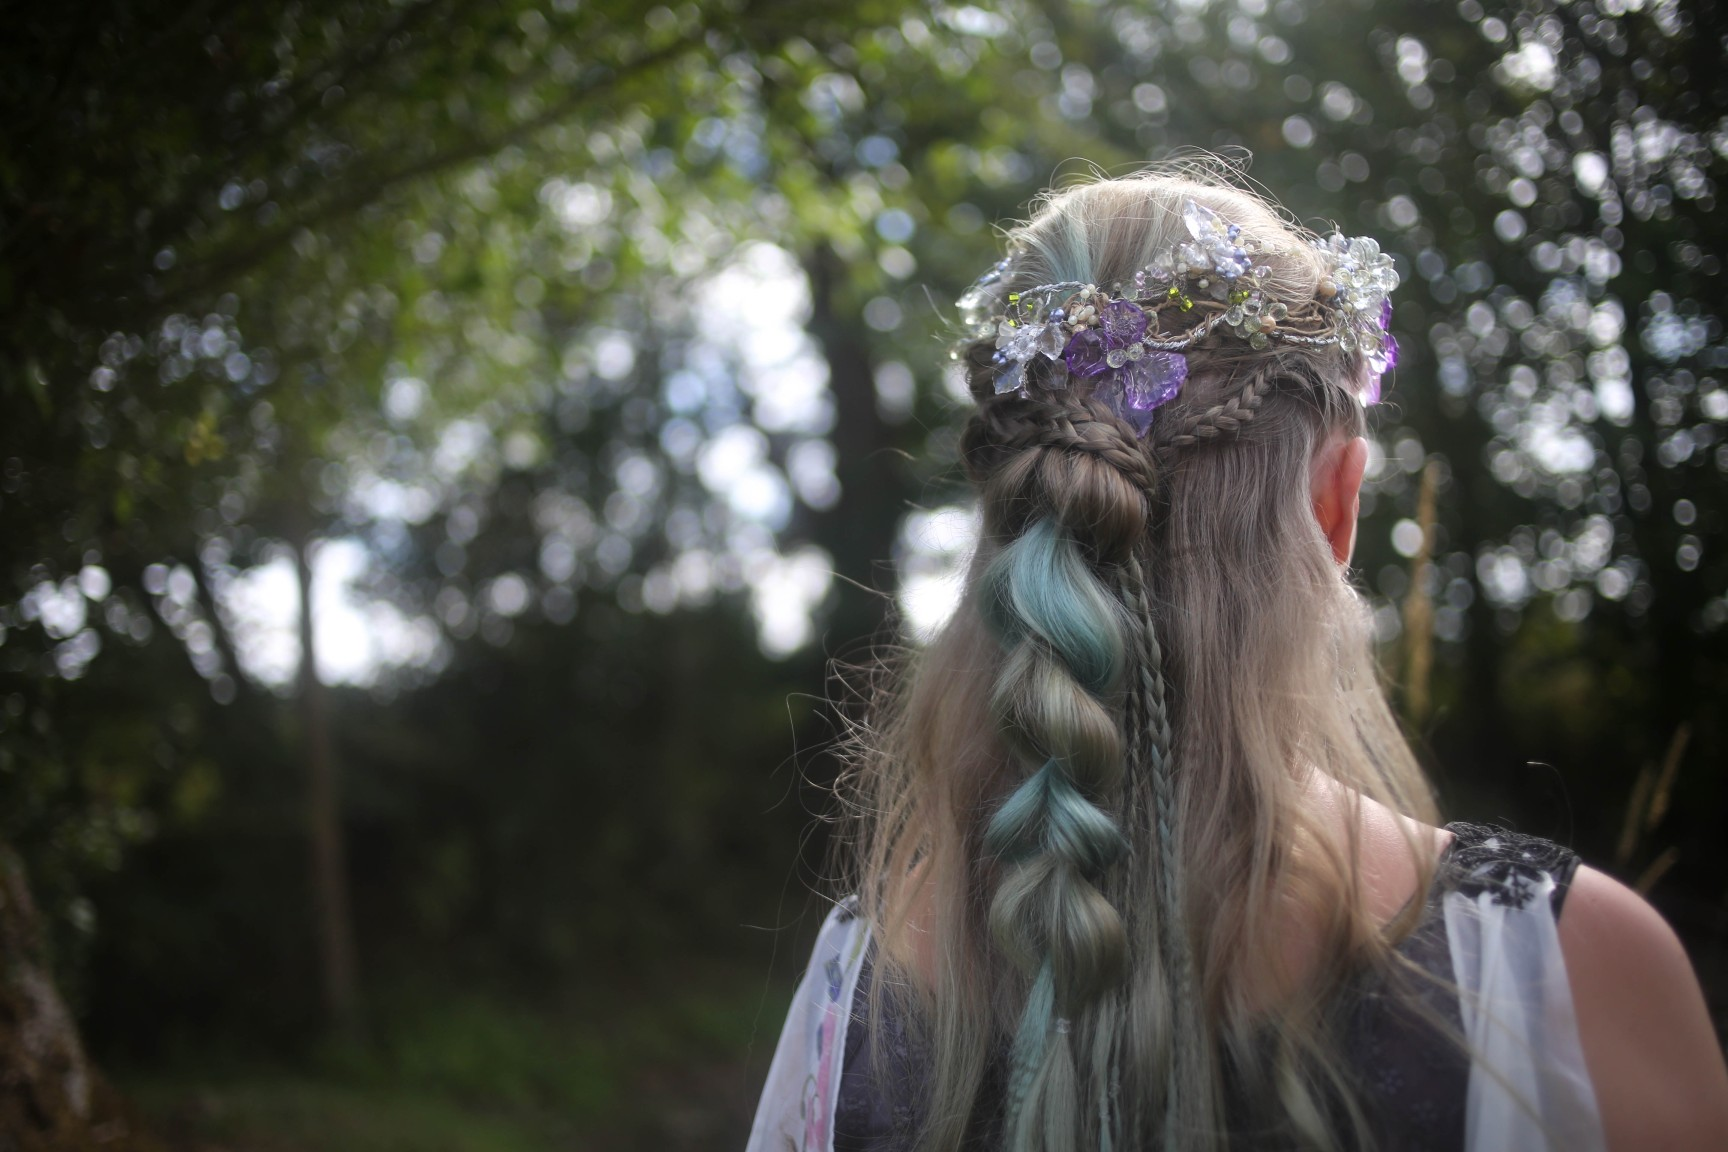 nature wedding - pagan wedding - ethereal wedding - spiritual wedding - alternative wedding - mystical wedding - quirky wedding - unique wedding hairstyle